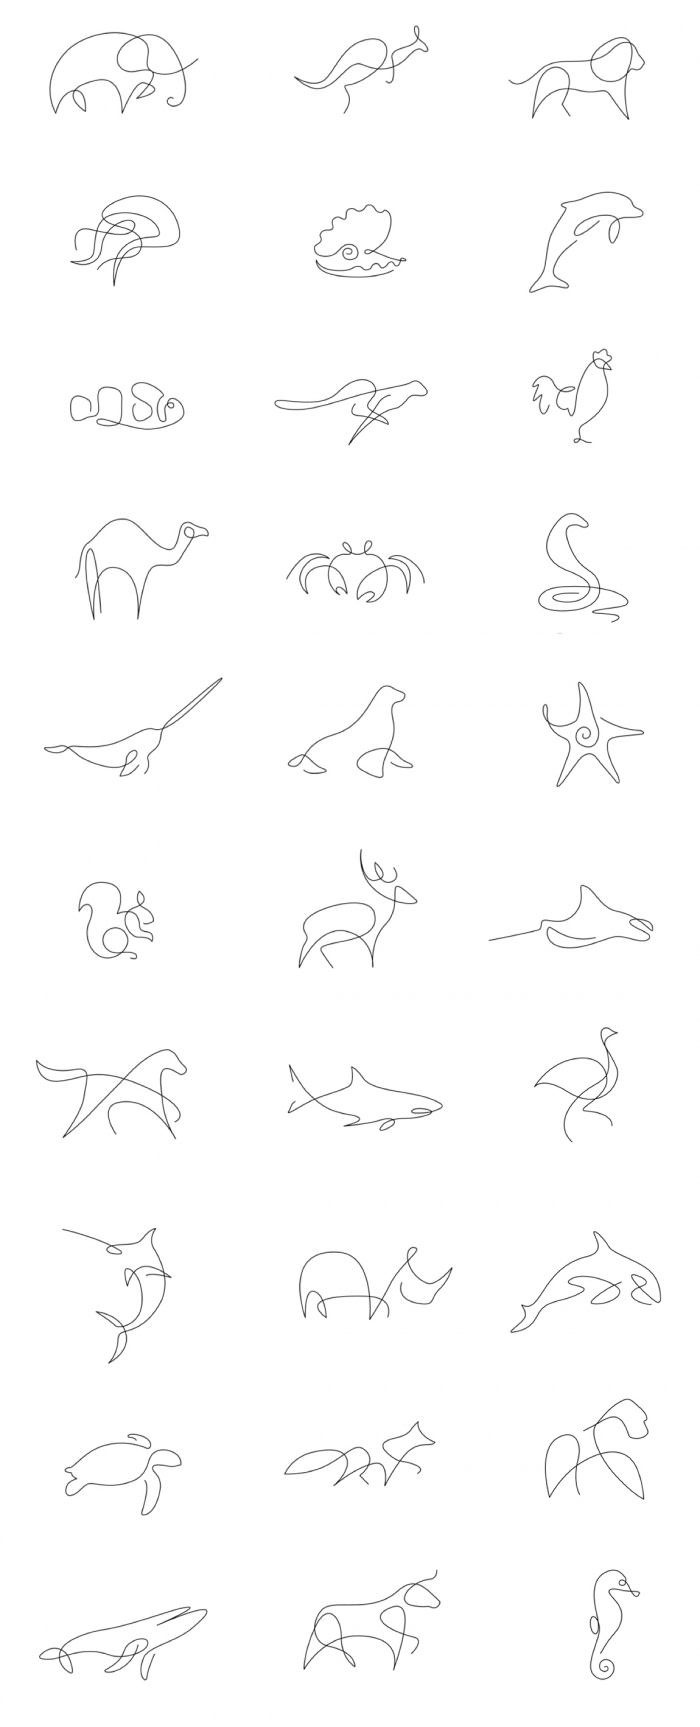 Single Line Drawing Tattoos : Best animal drawings ideas on pinterest pencil art